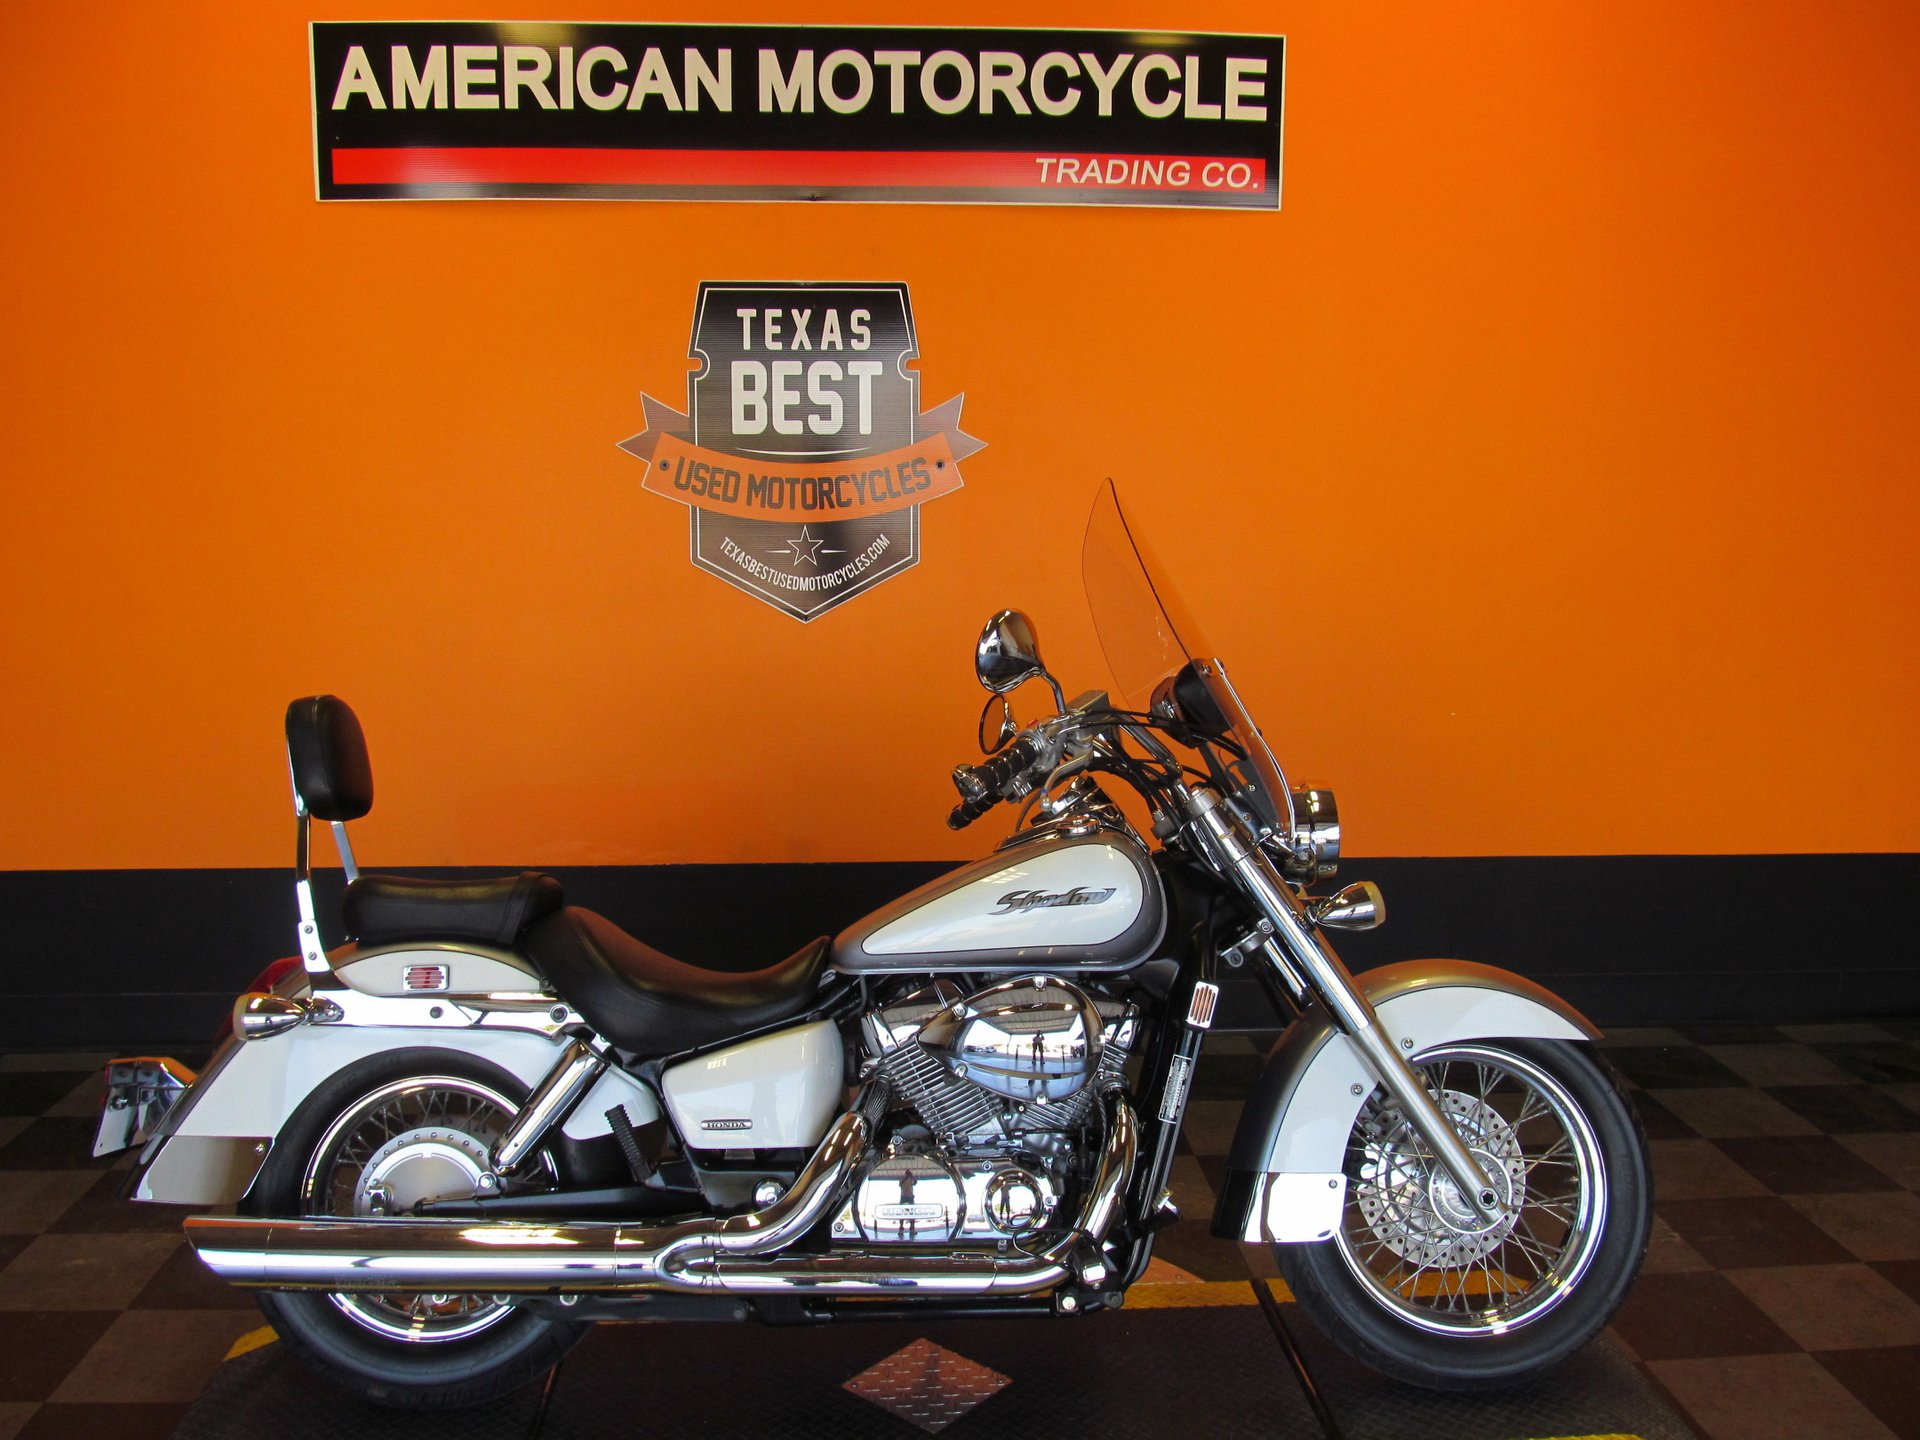 2006 honda shadow vt750ca